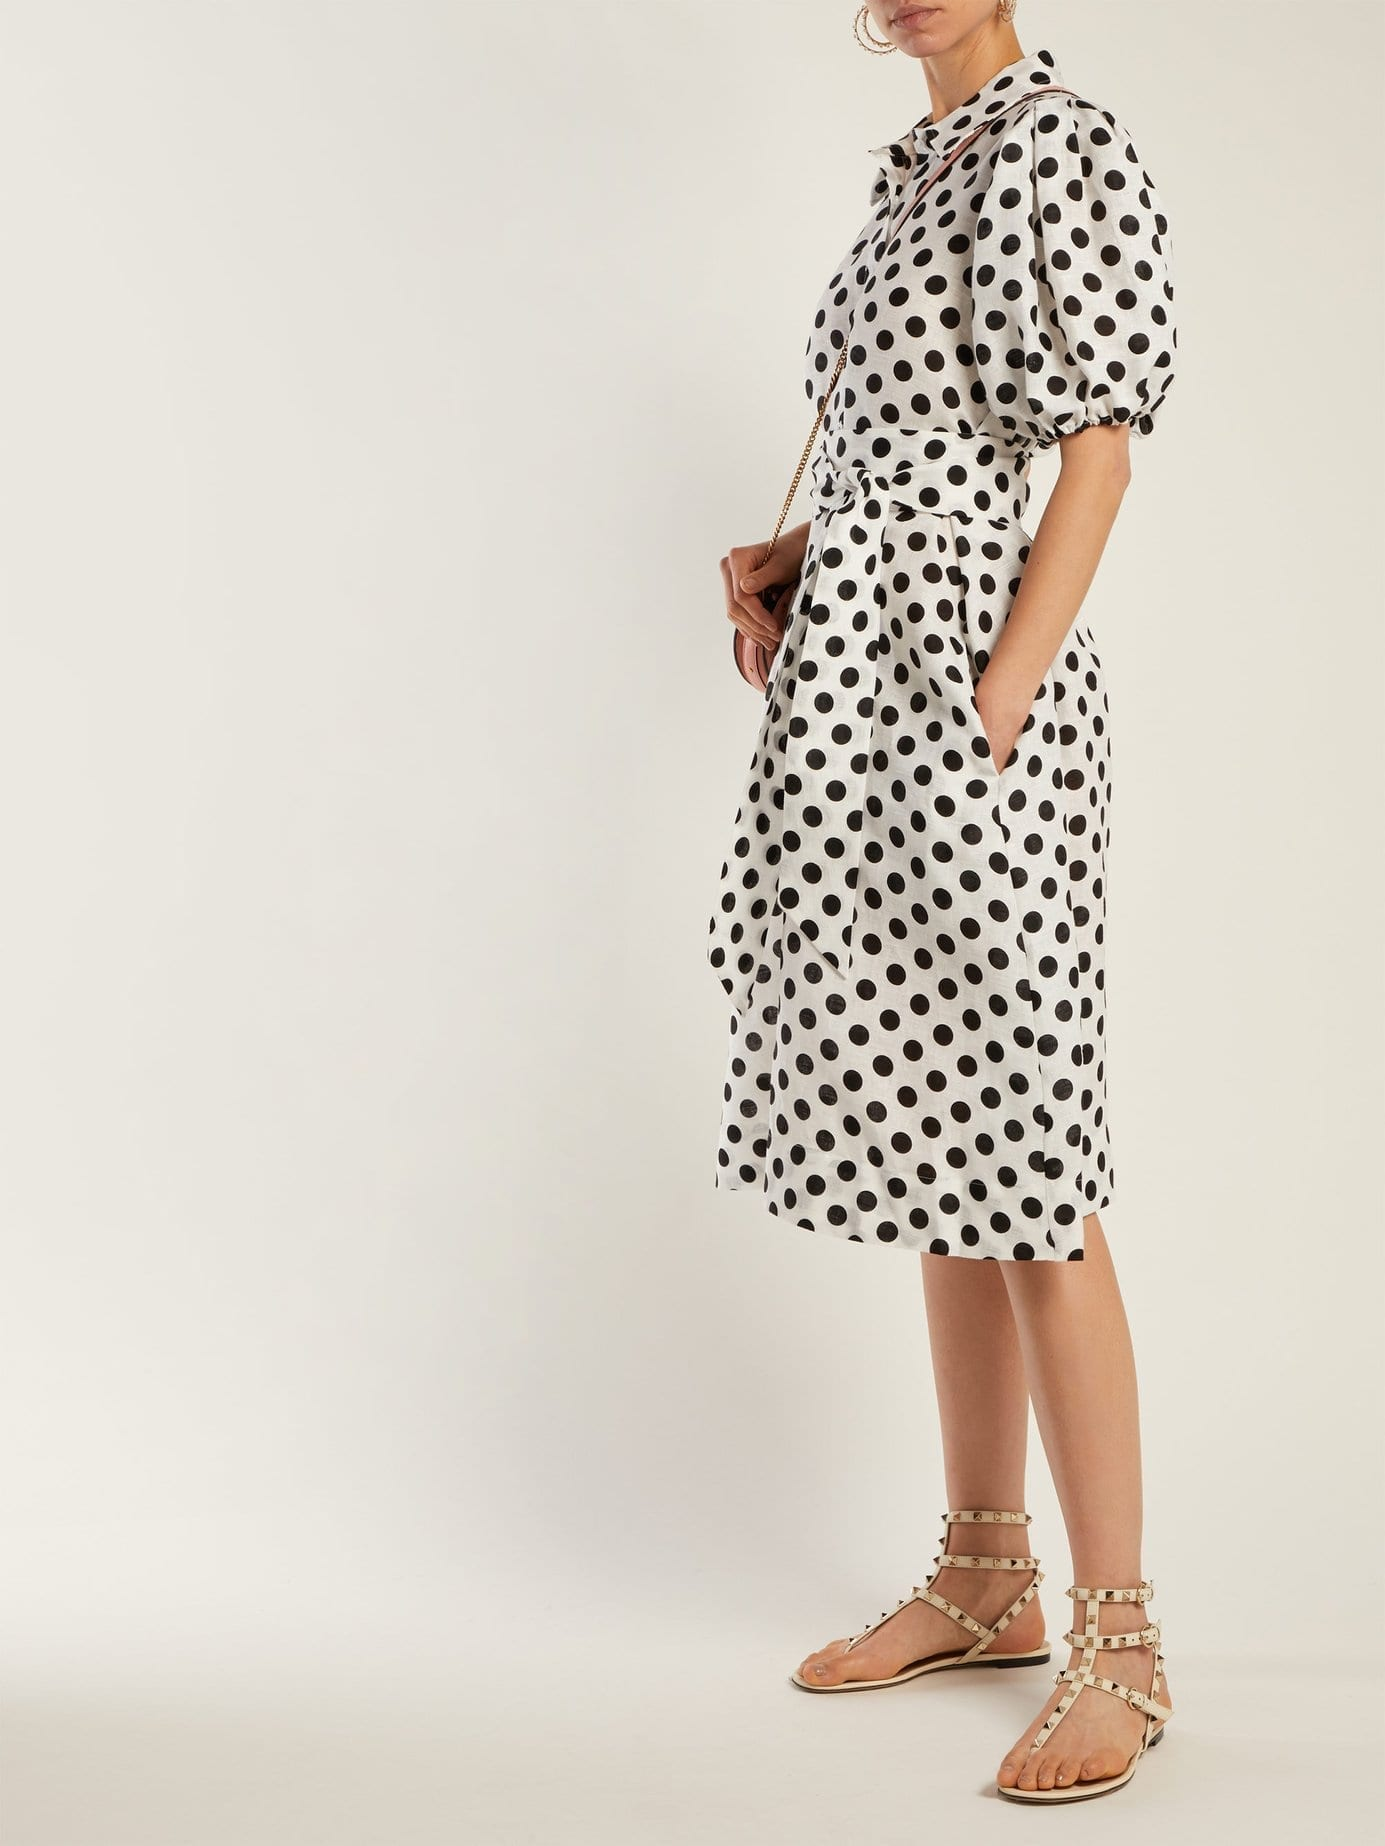 LISA MARIE FERNANDEZ Polka-Dot Linen White Shirtdress